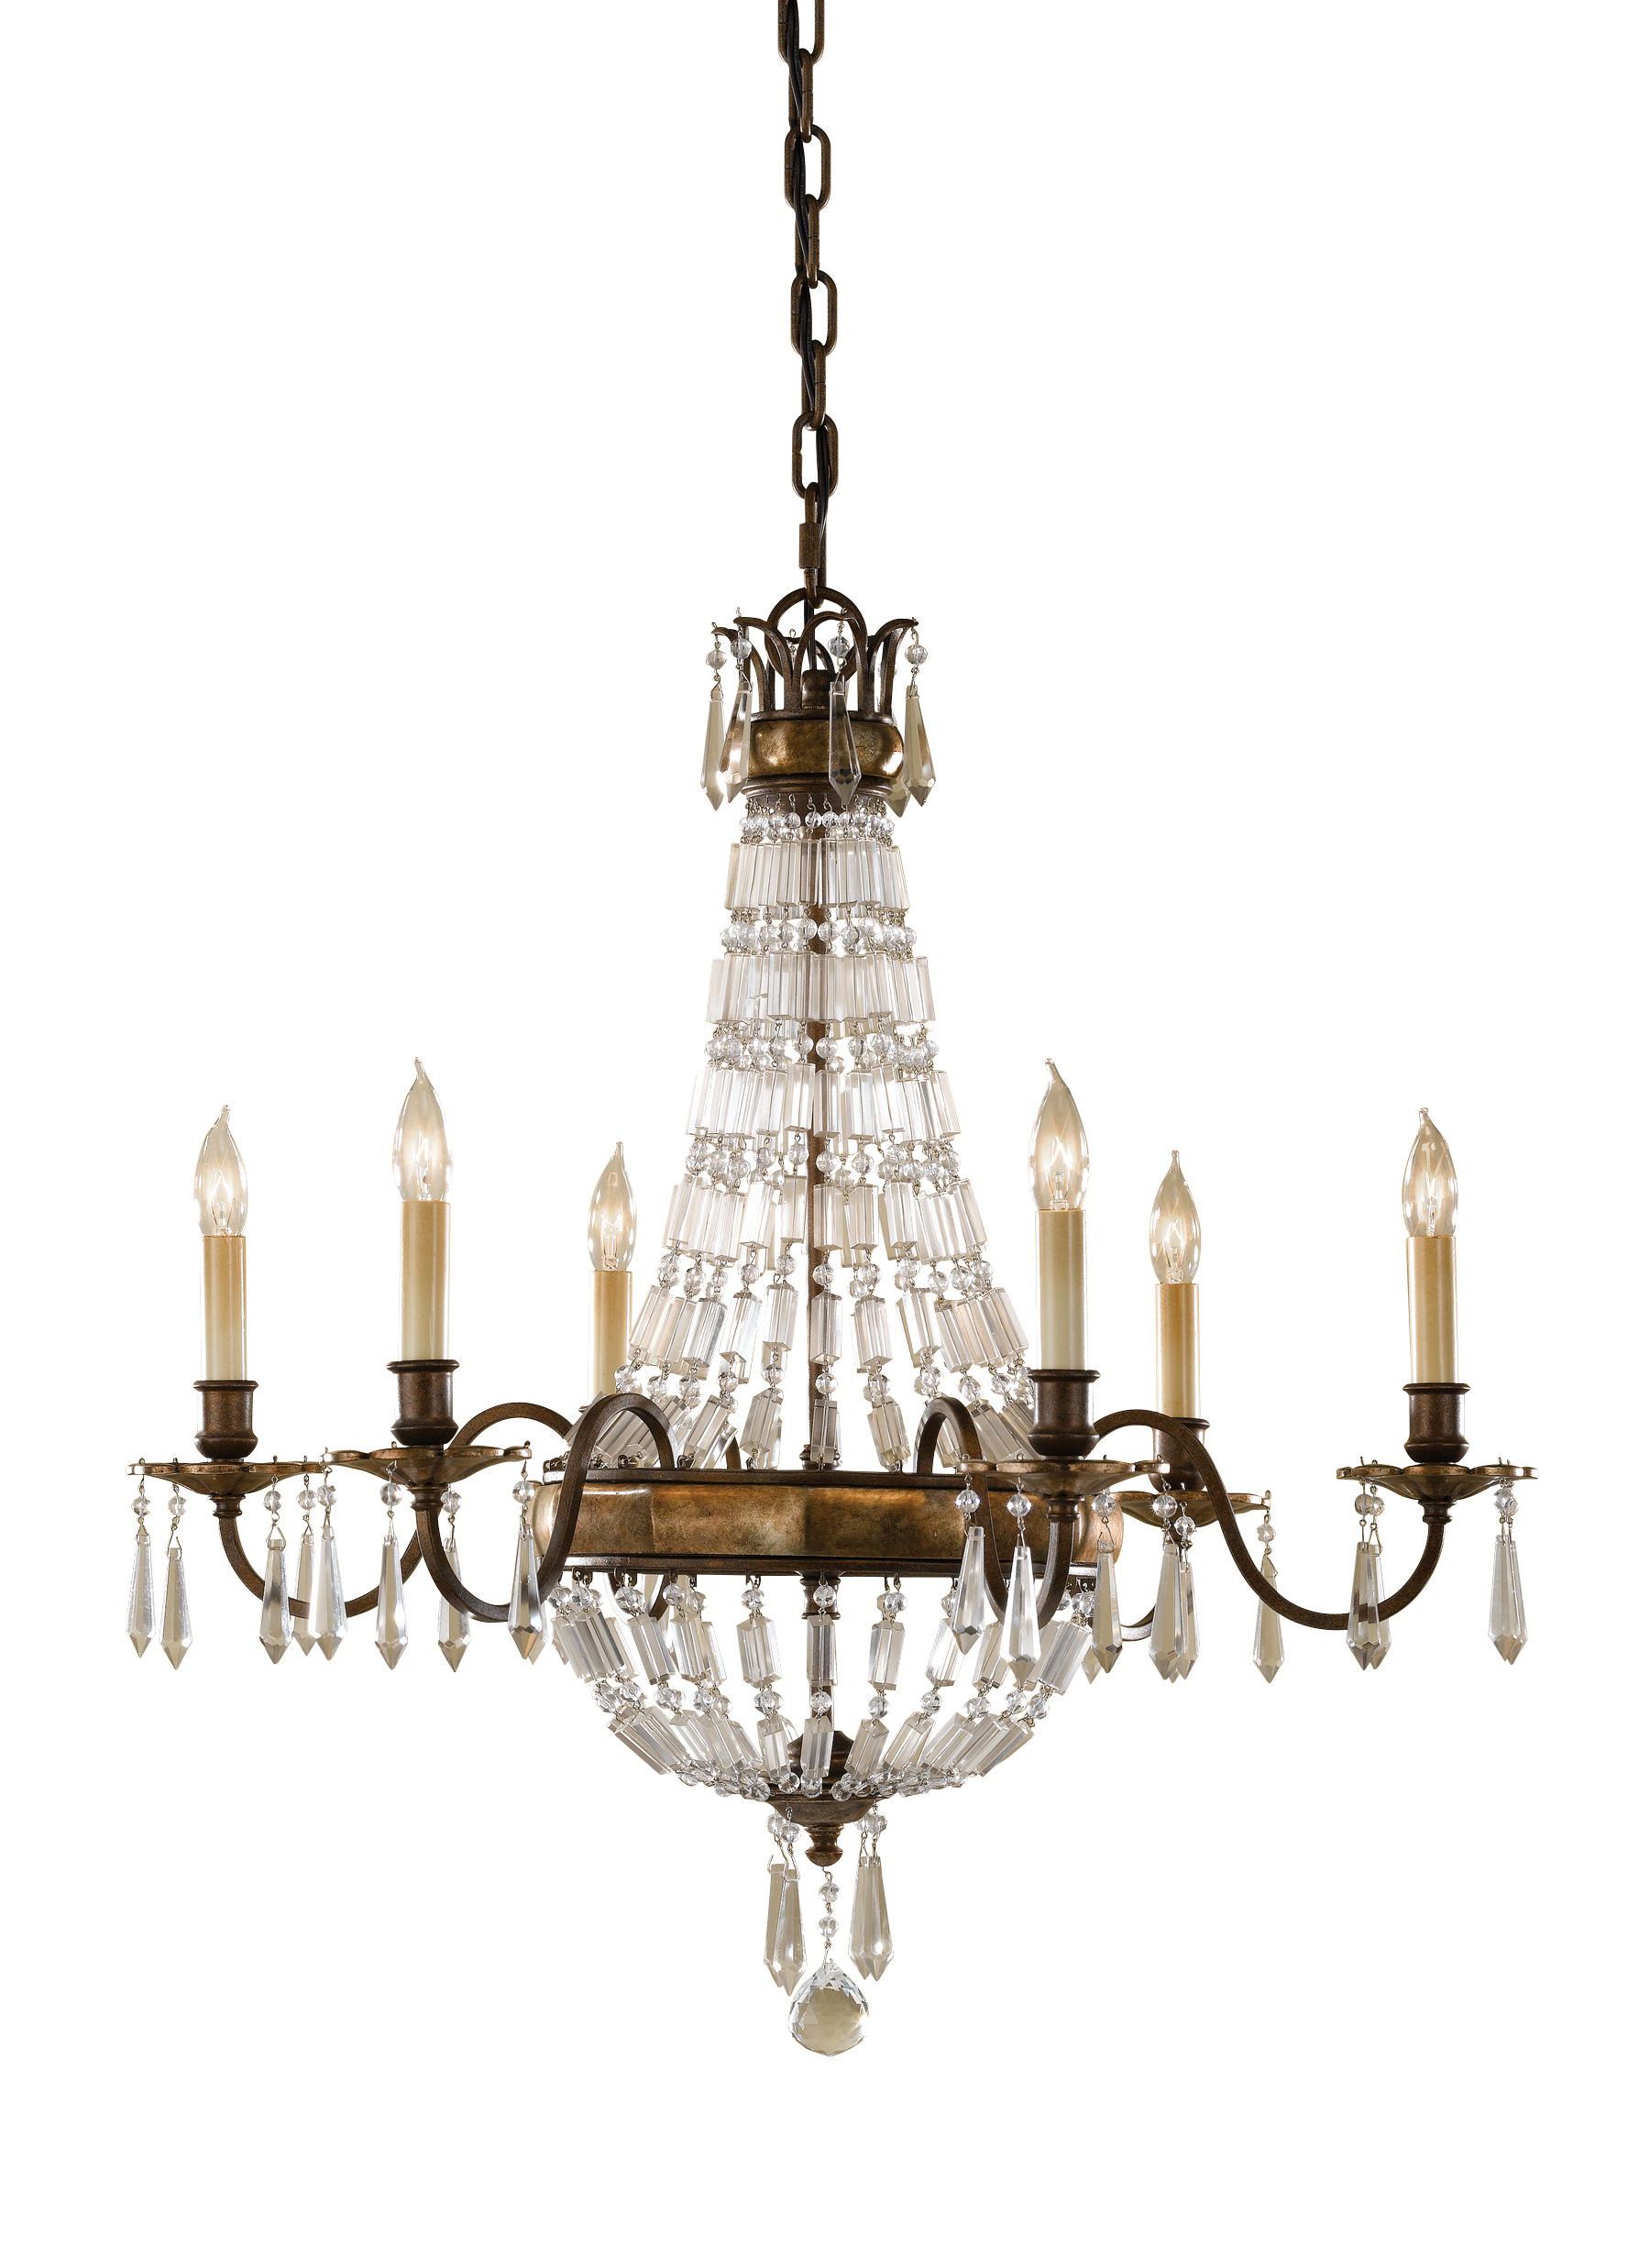 Murray Feiss | Murray Feiss Lamp | Murray Feiss Madera Chandelier